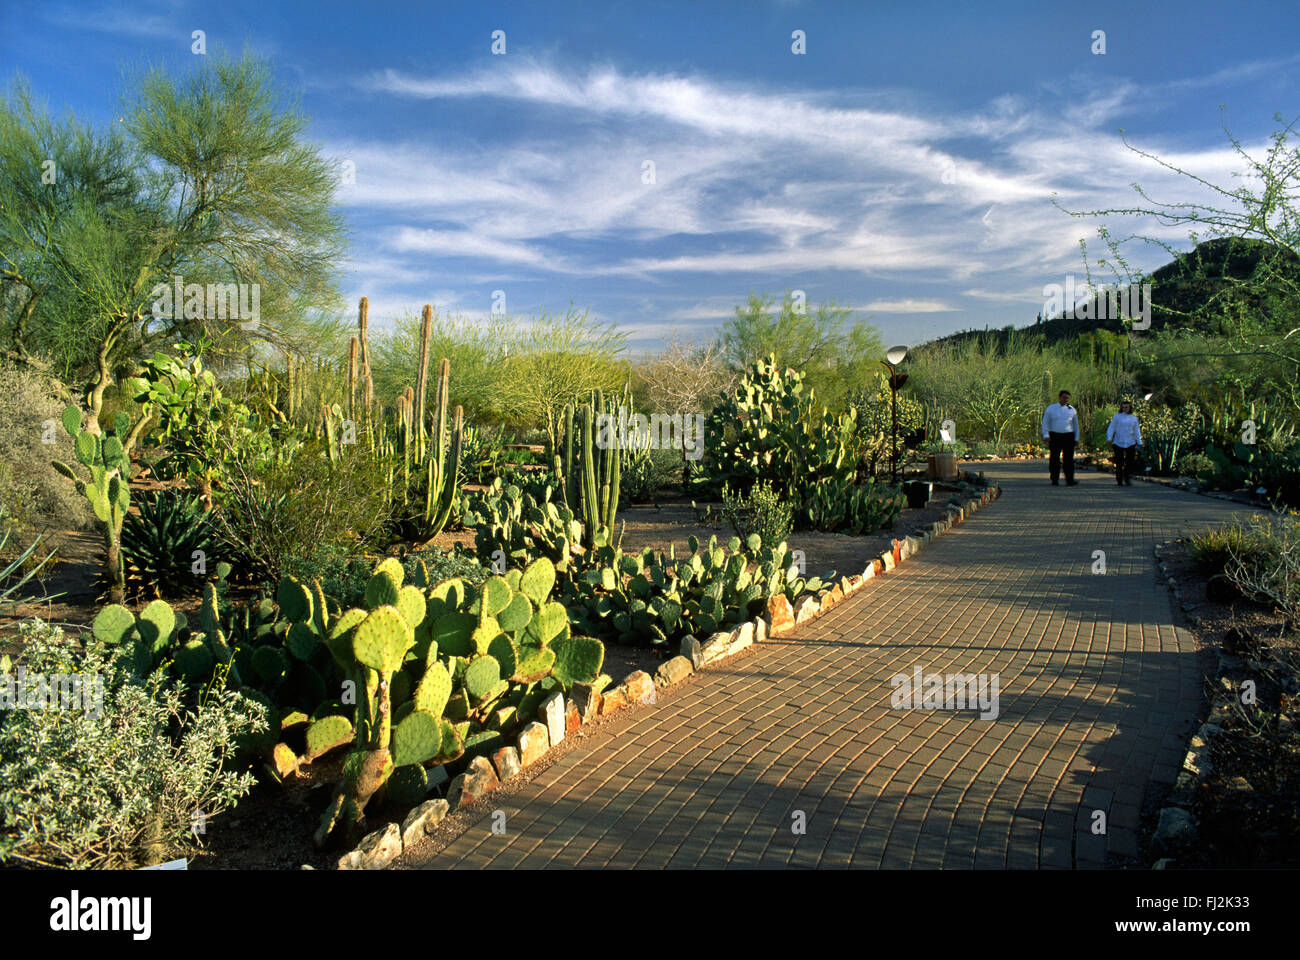 The DESERT BOTANICAL GARDEN In PHOENIX ARIZONA Has The Largest Collection  Of Desert Plants In The US